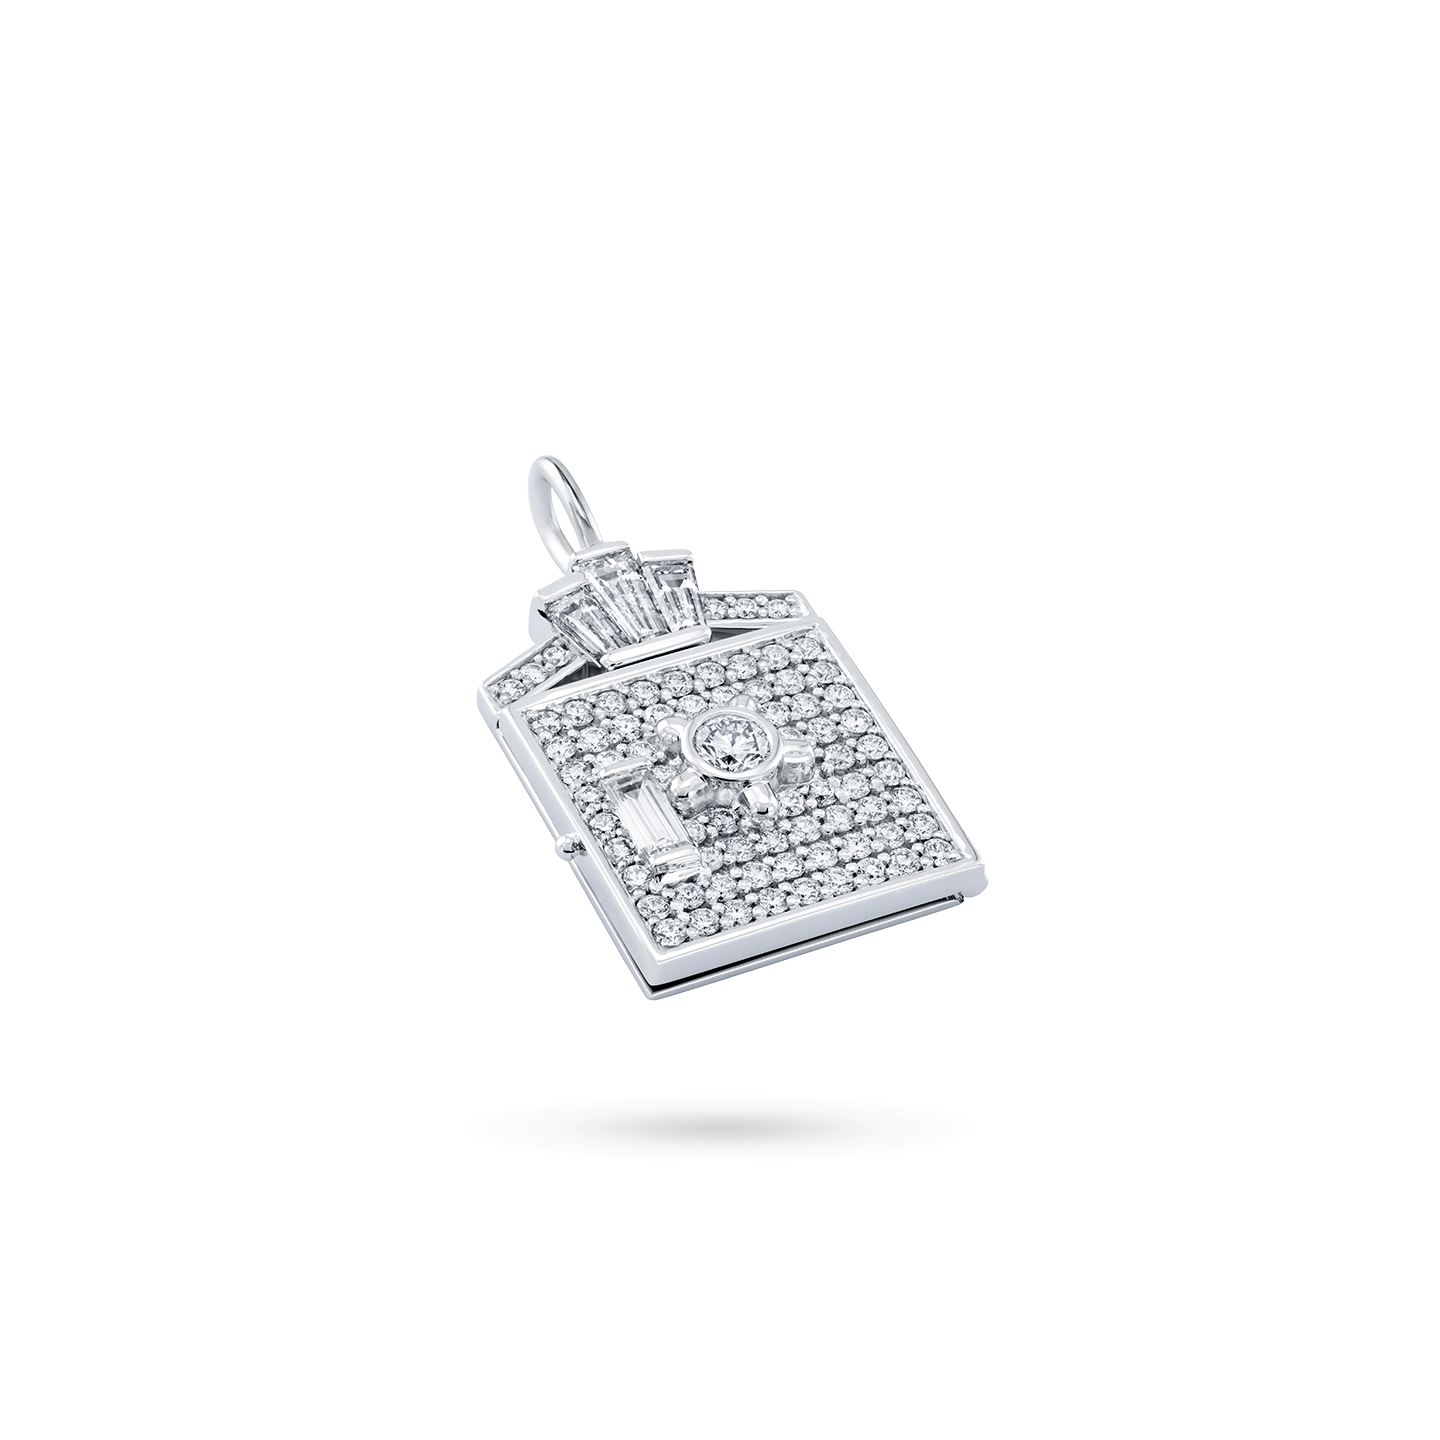 Fifth Avenue Vault Charm, Product Image 2